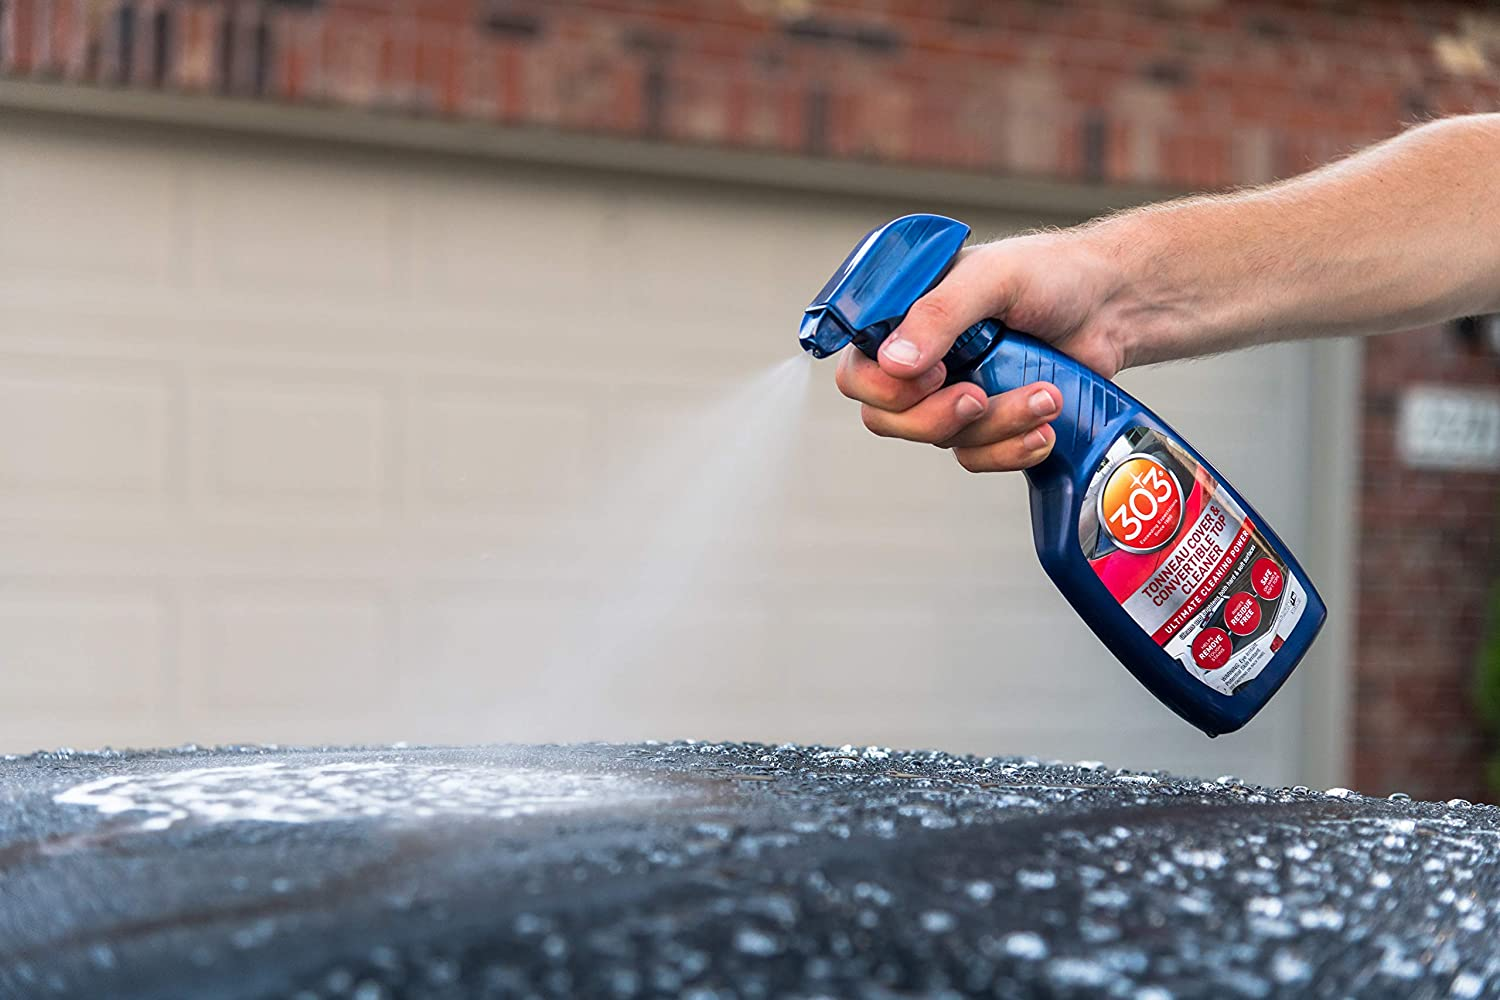 303 Tonneau Cover and Convertible Top Cleaner - Vinyl and Fabric Top Cleaner, 16 fl. oz.